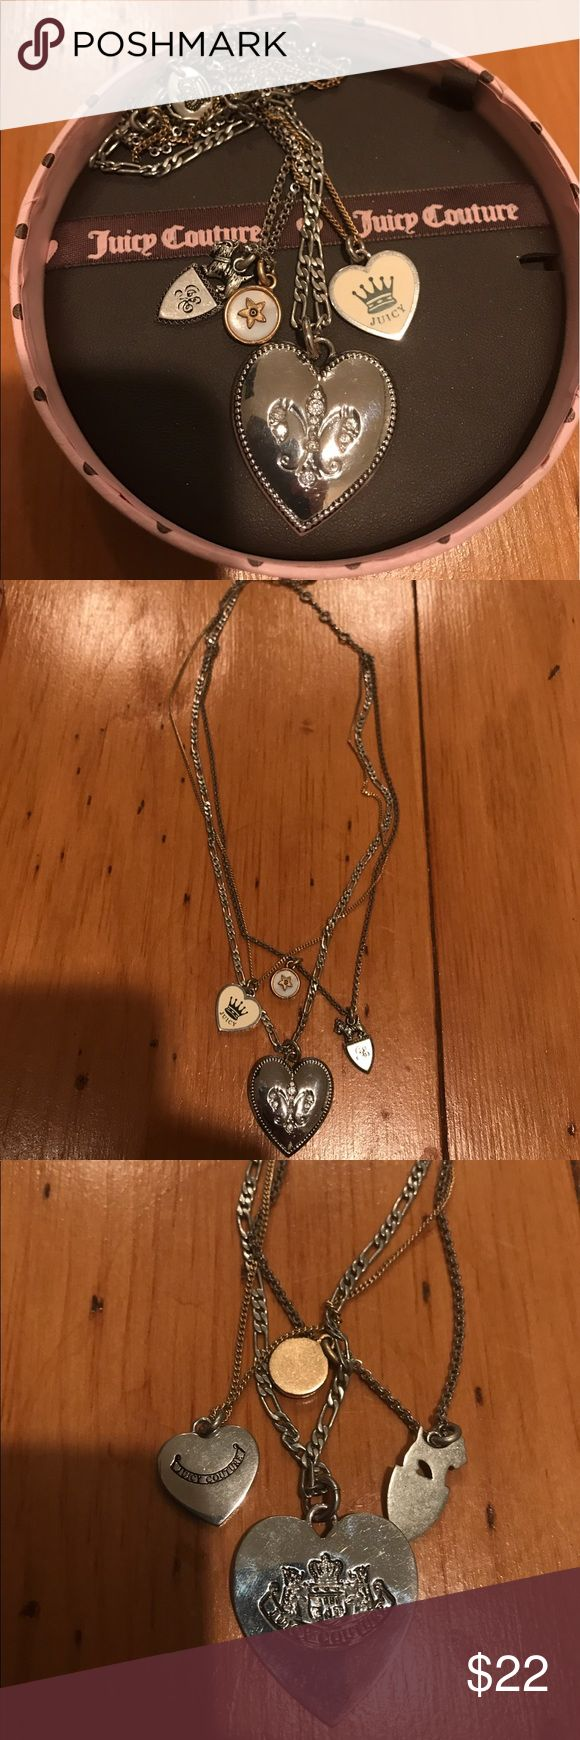 Juicy Couture Silver Fleur De Lis Charm Necklace This beautiful, 3-chain necklace by Juicy Couture features a prominent heart-shaped charm with a rhinestone fleur de lis logo. The chains are of different styles and thicknesses, and one chain is gold while the others are silver. The third photo shows the backside of each of the 4 charms. Comes in original box! Juicy Couture Jewelry Necklaces